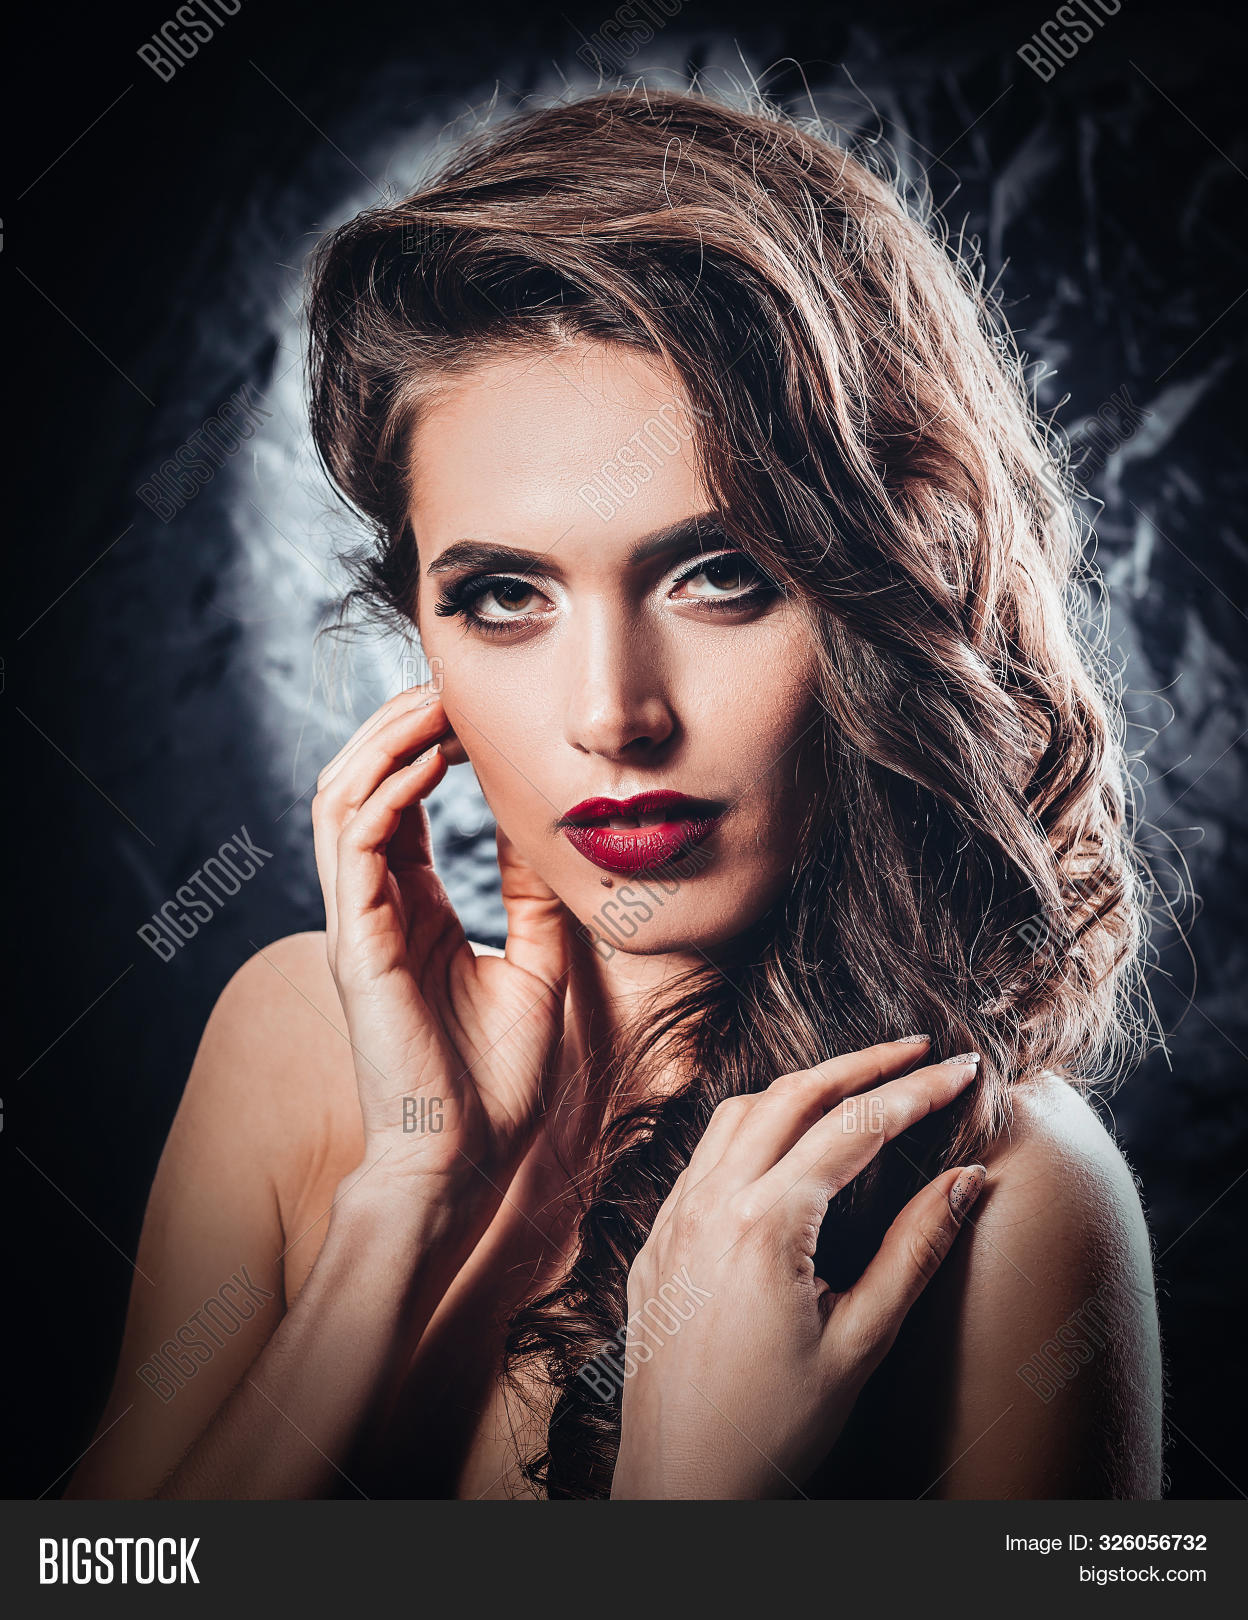 Glamorous Young Woman With Evening Makeup. Isolated